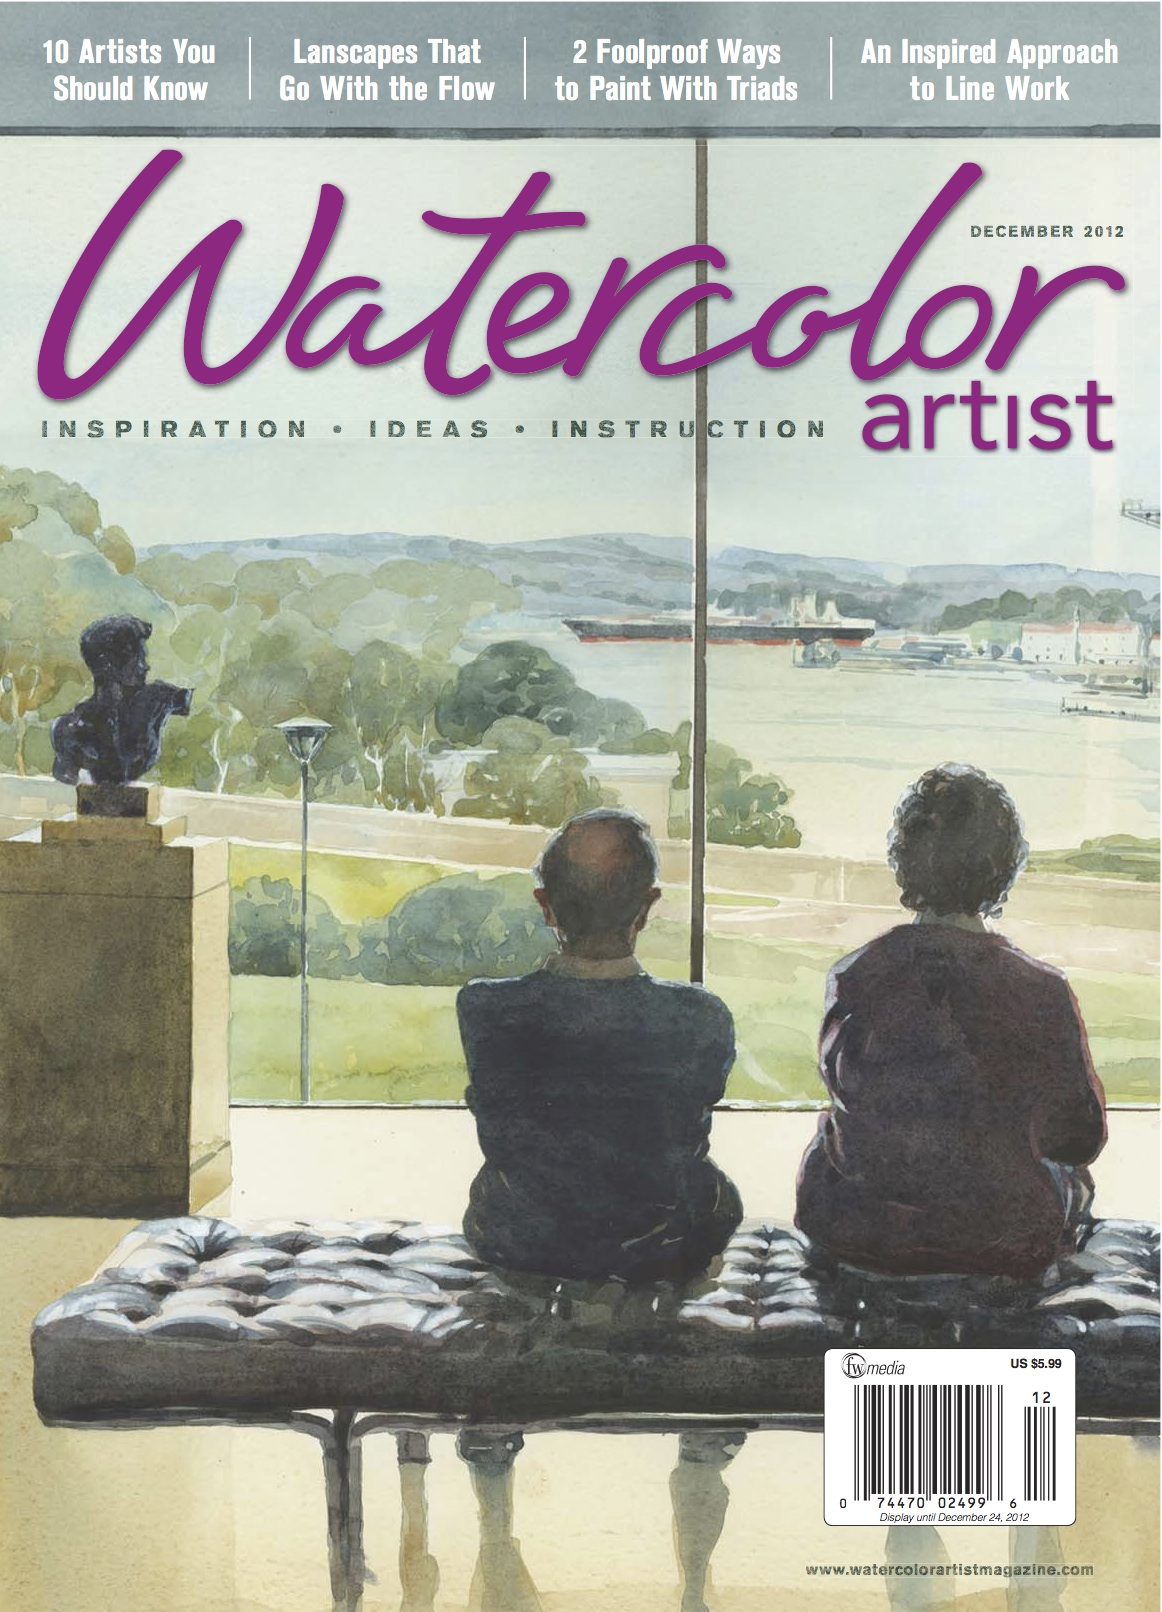 Watercolor Magazine Cover Dec 2012.jpg